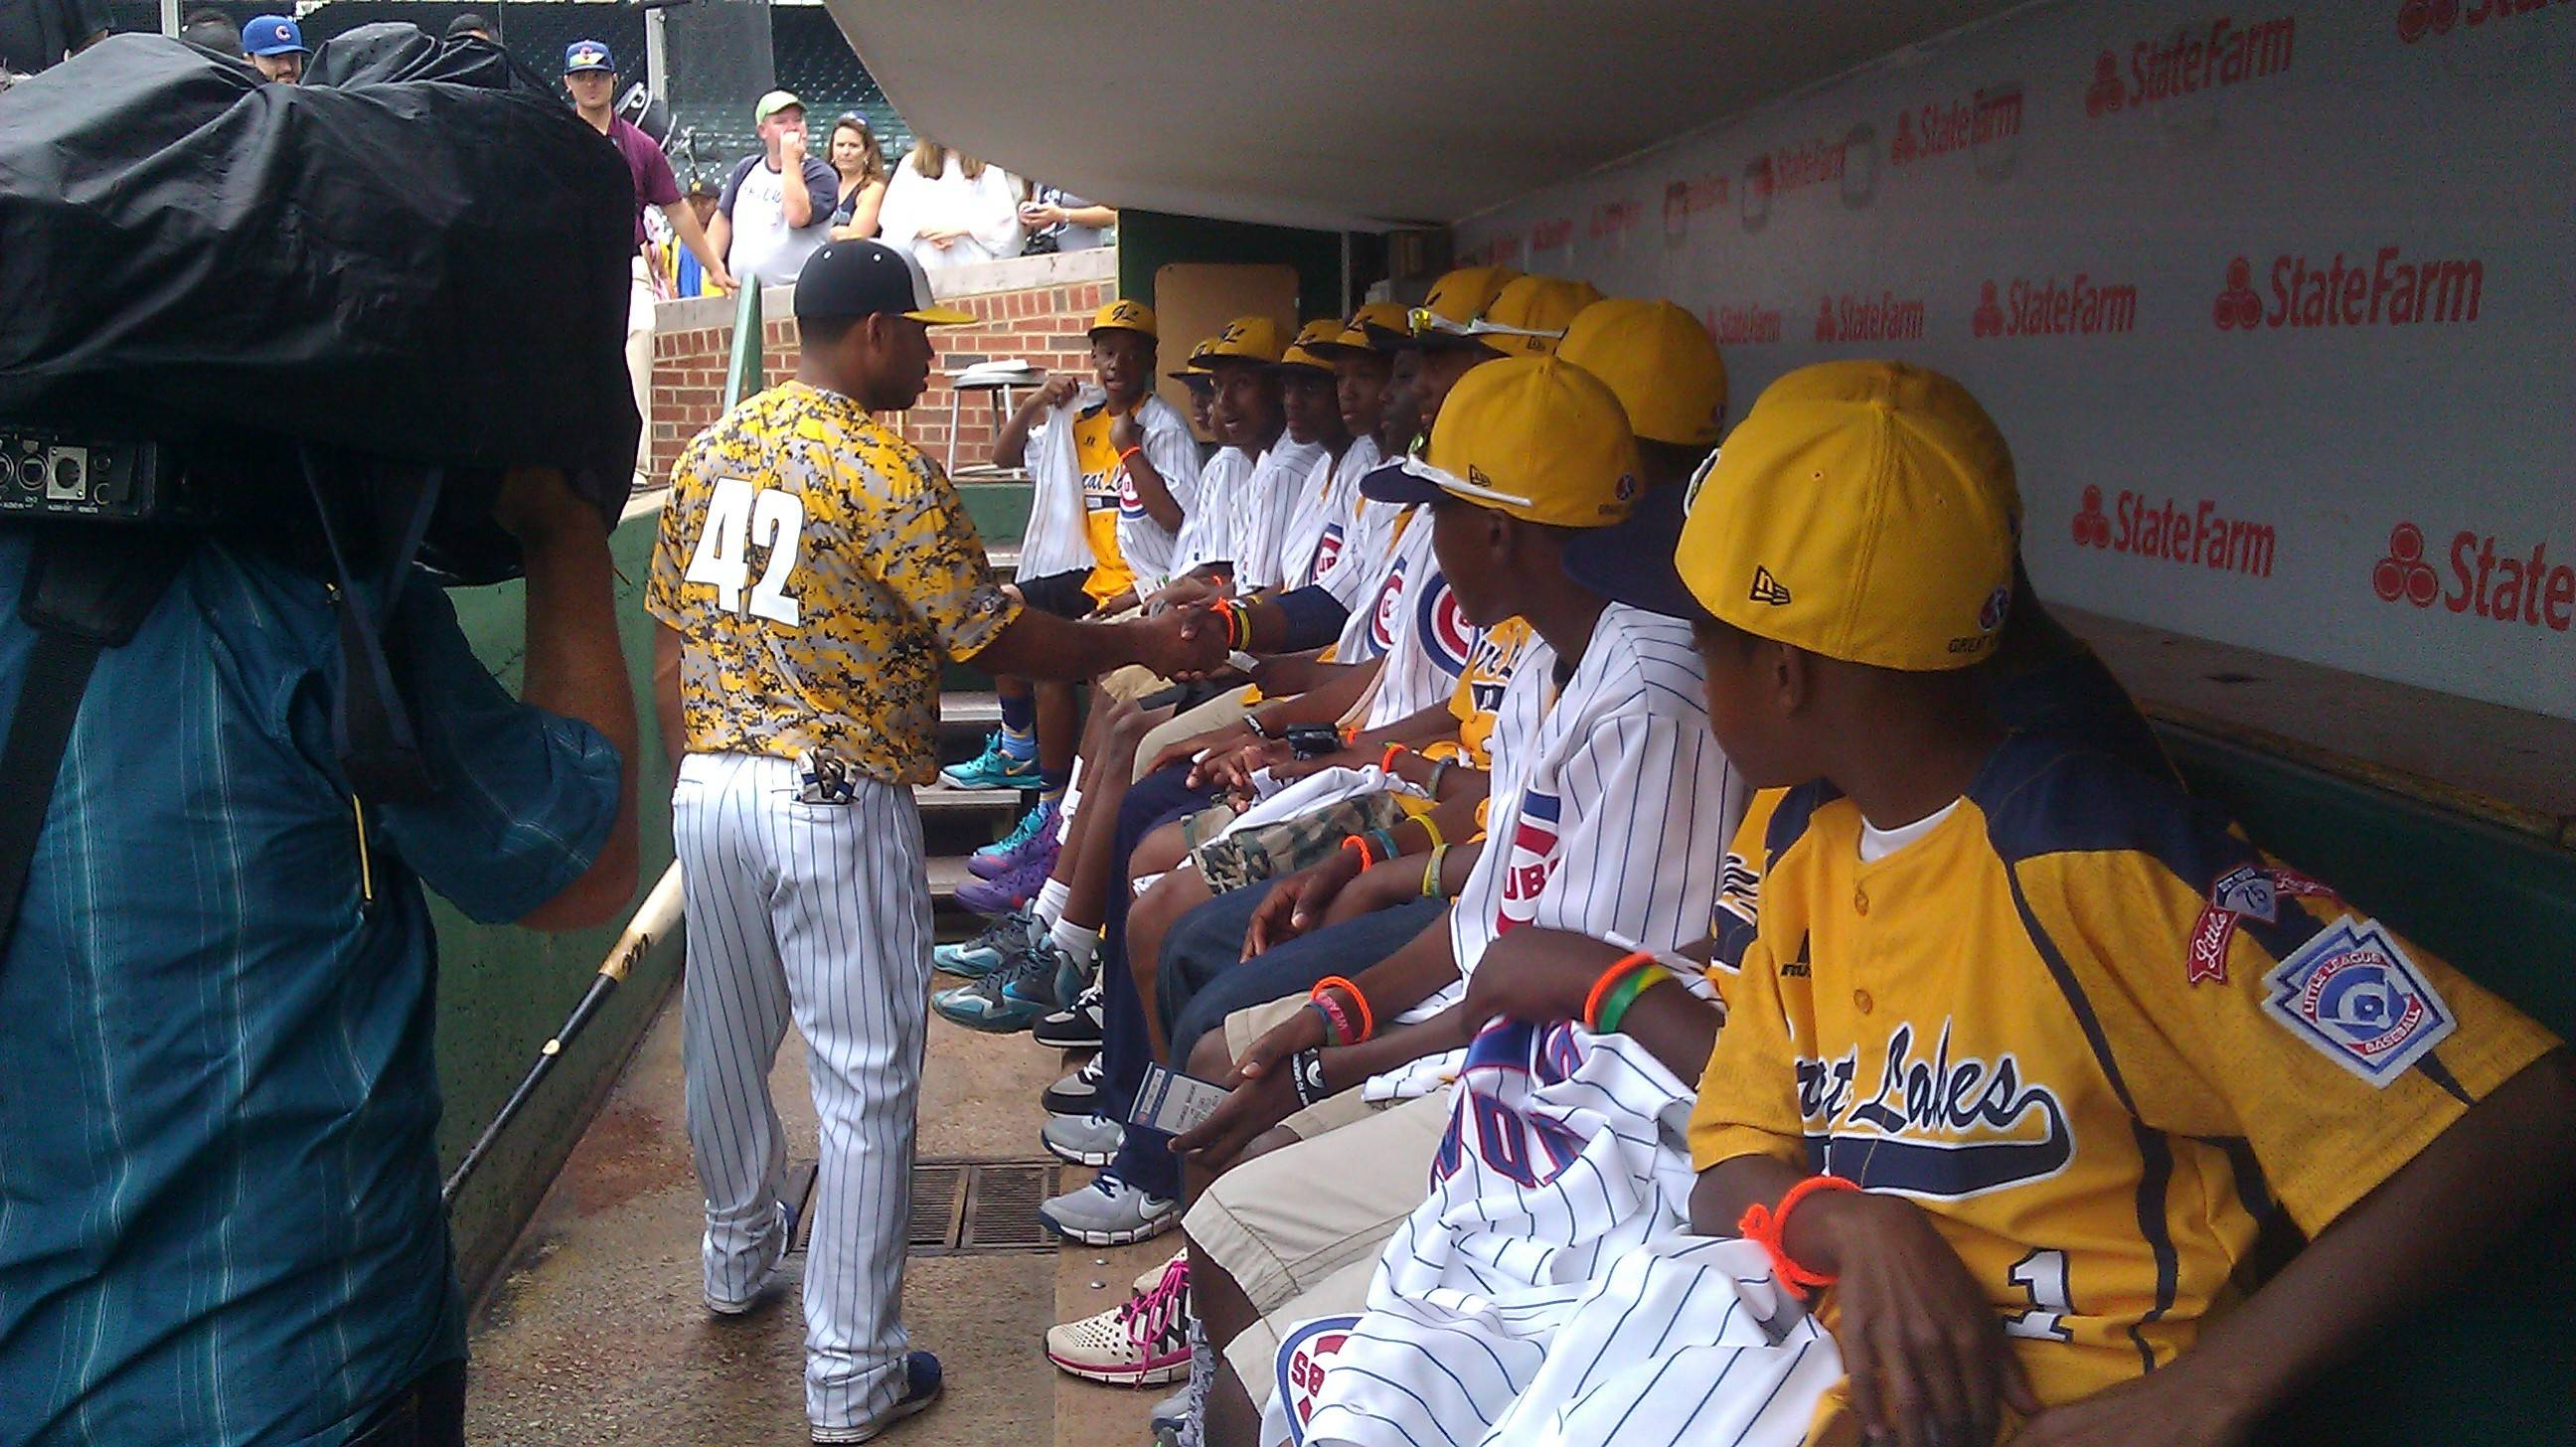 Cubs third baseman Luis Valbuena greets members of the Jackie Robinson West Little League team. Cubs players wore special warm-up jerseys before Monday's game against the Milwaukee Brewers. The jerseys honored JRW and featured the No. 42 in honor of Jackie Robinson.